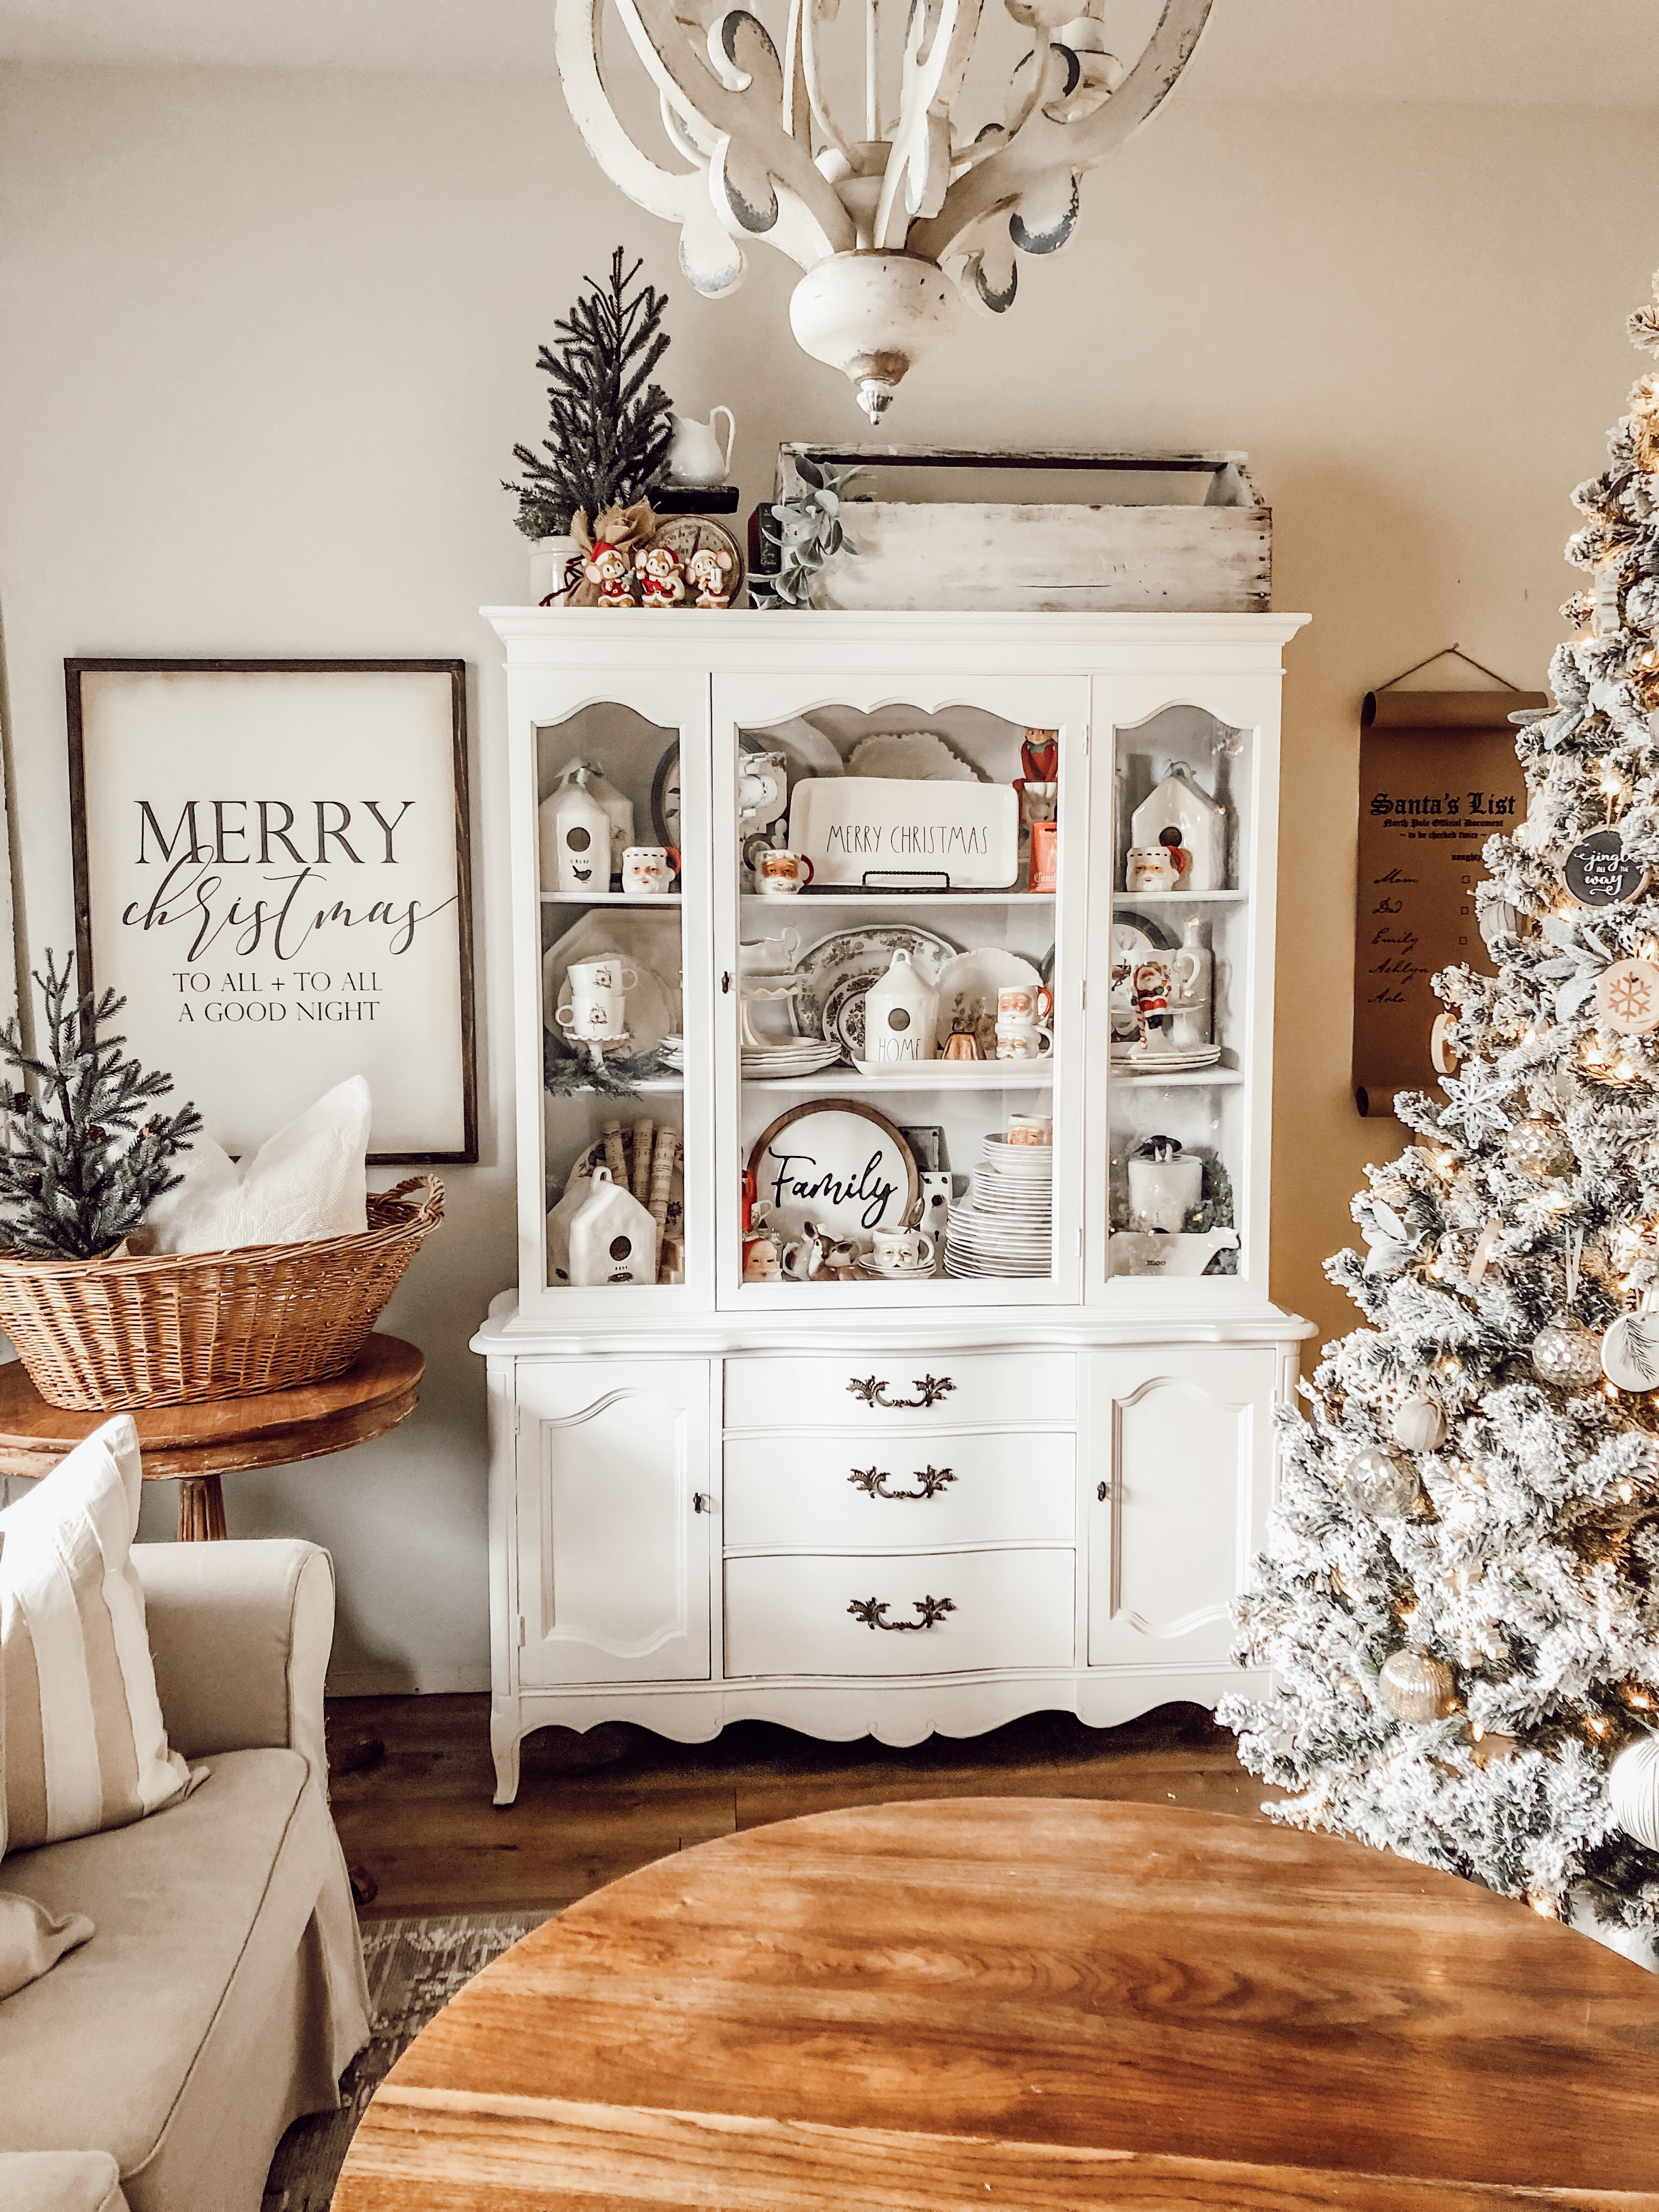 Styling A Farmhouse Hutch With Vintage Christmas Decor